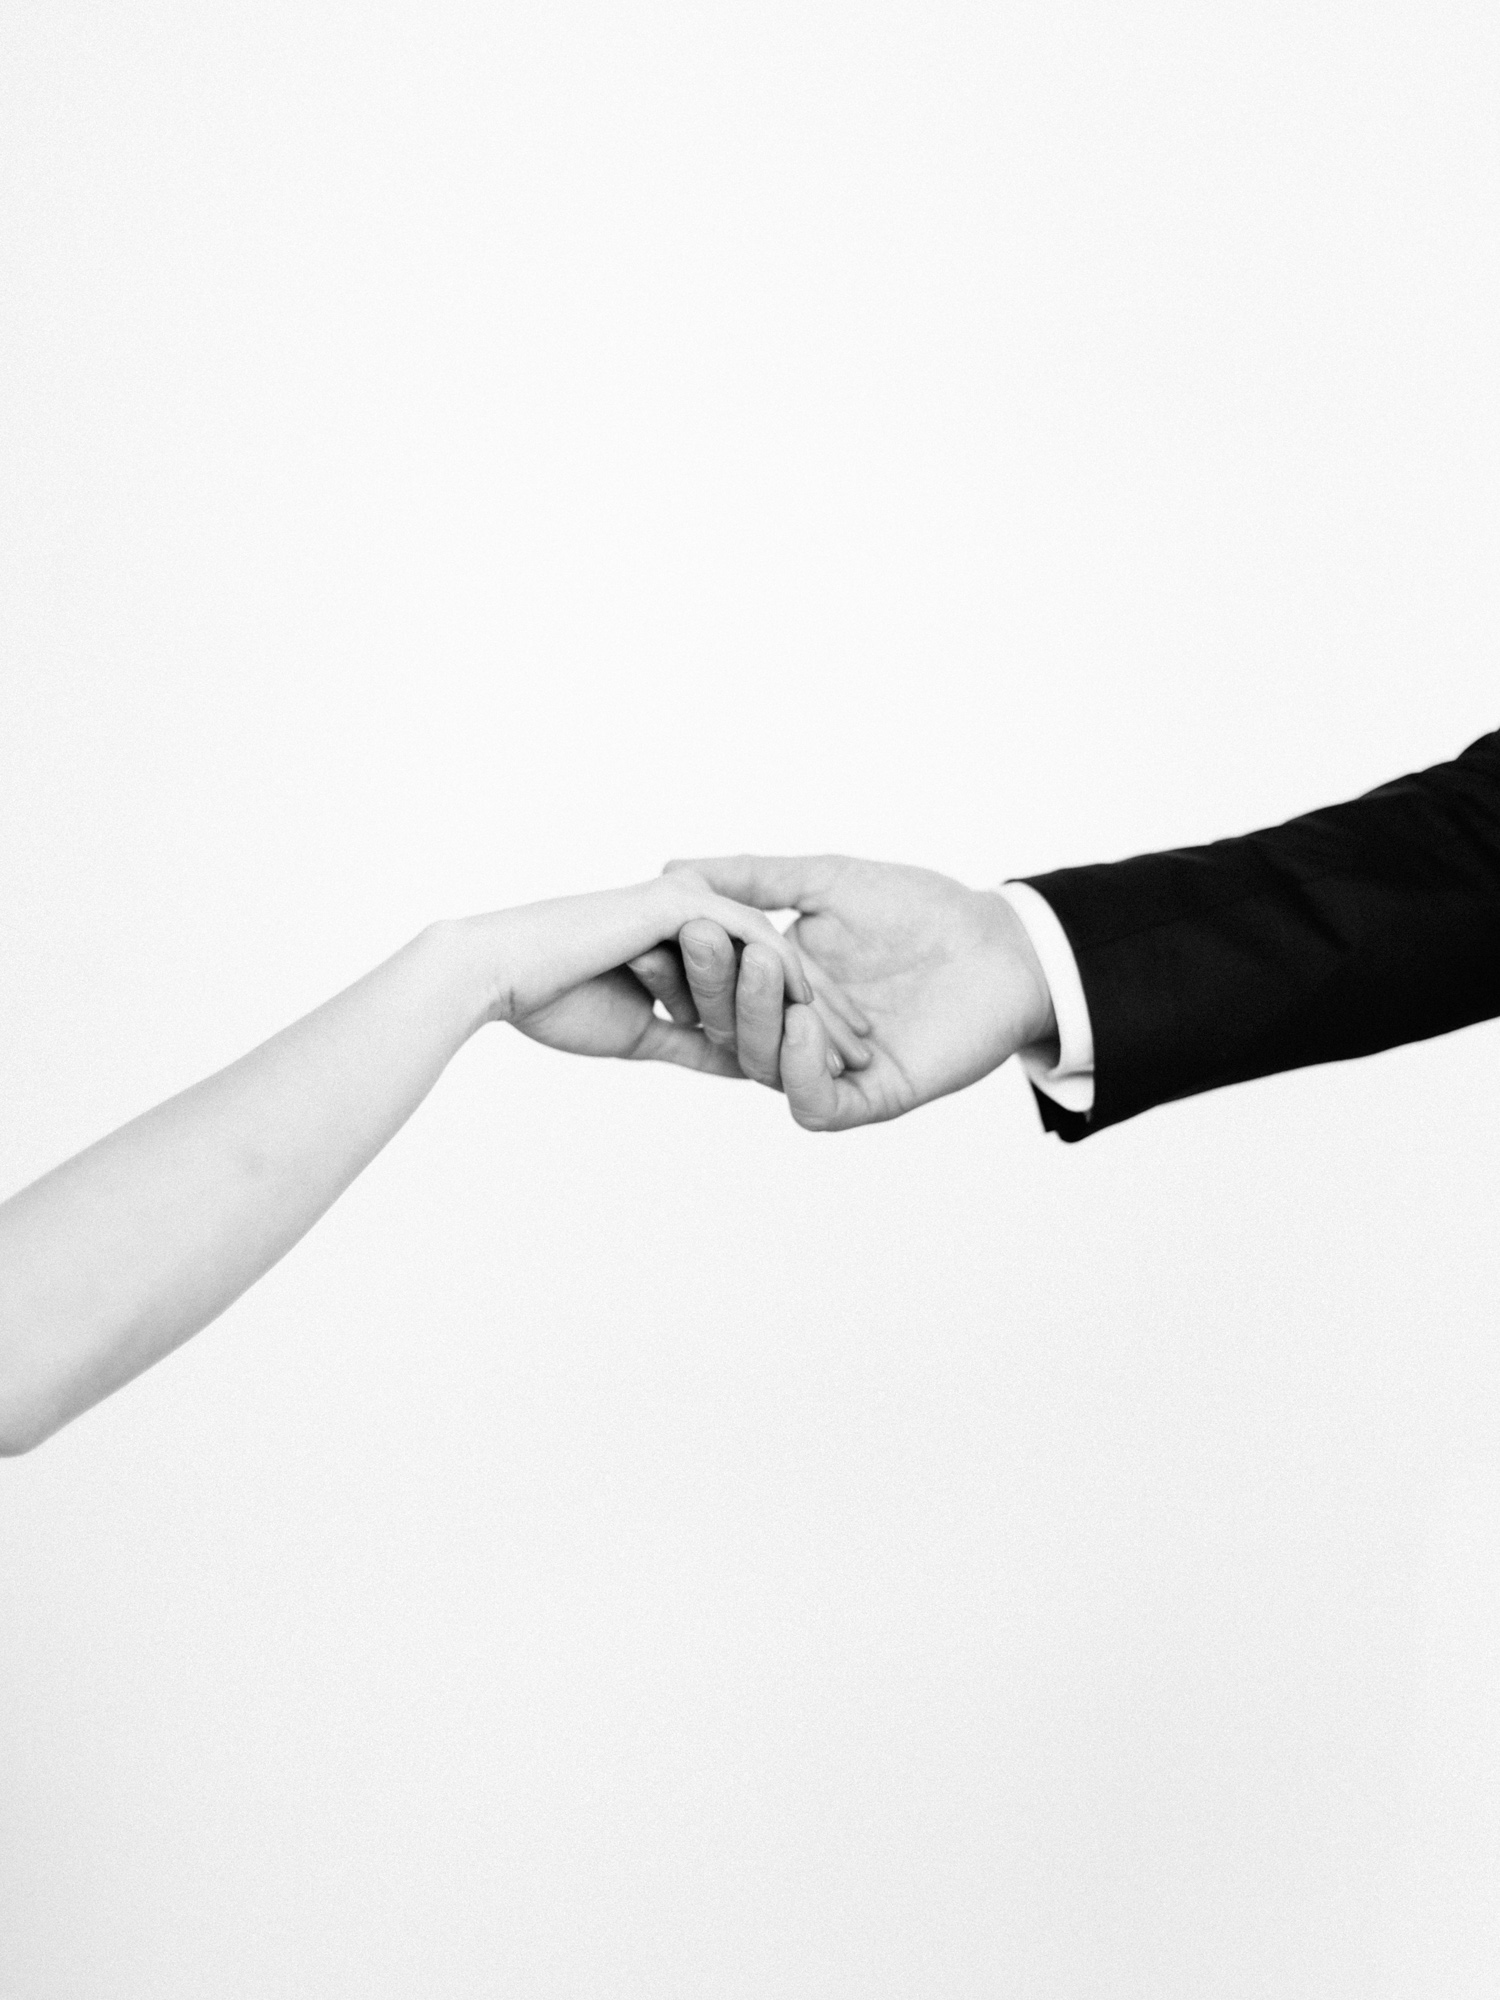 a simple photo of a woman's hand in a man's hand against a white background